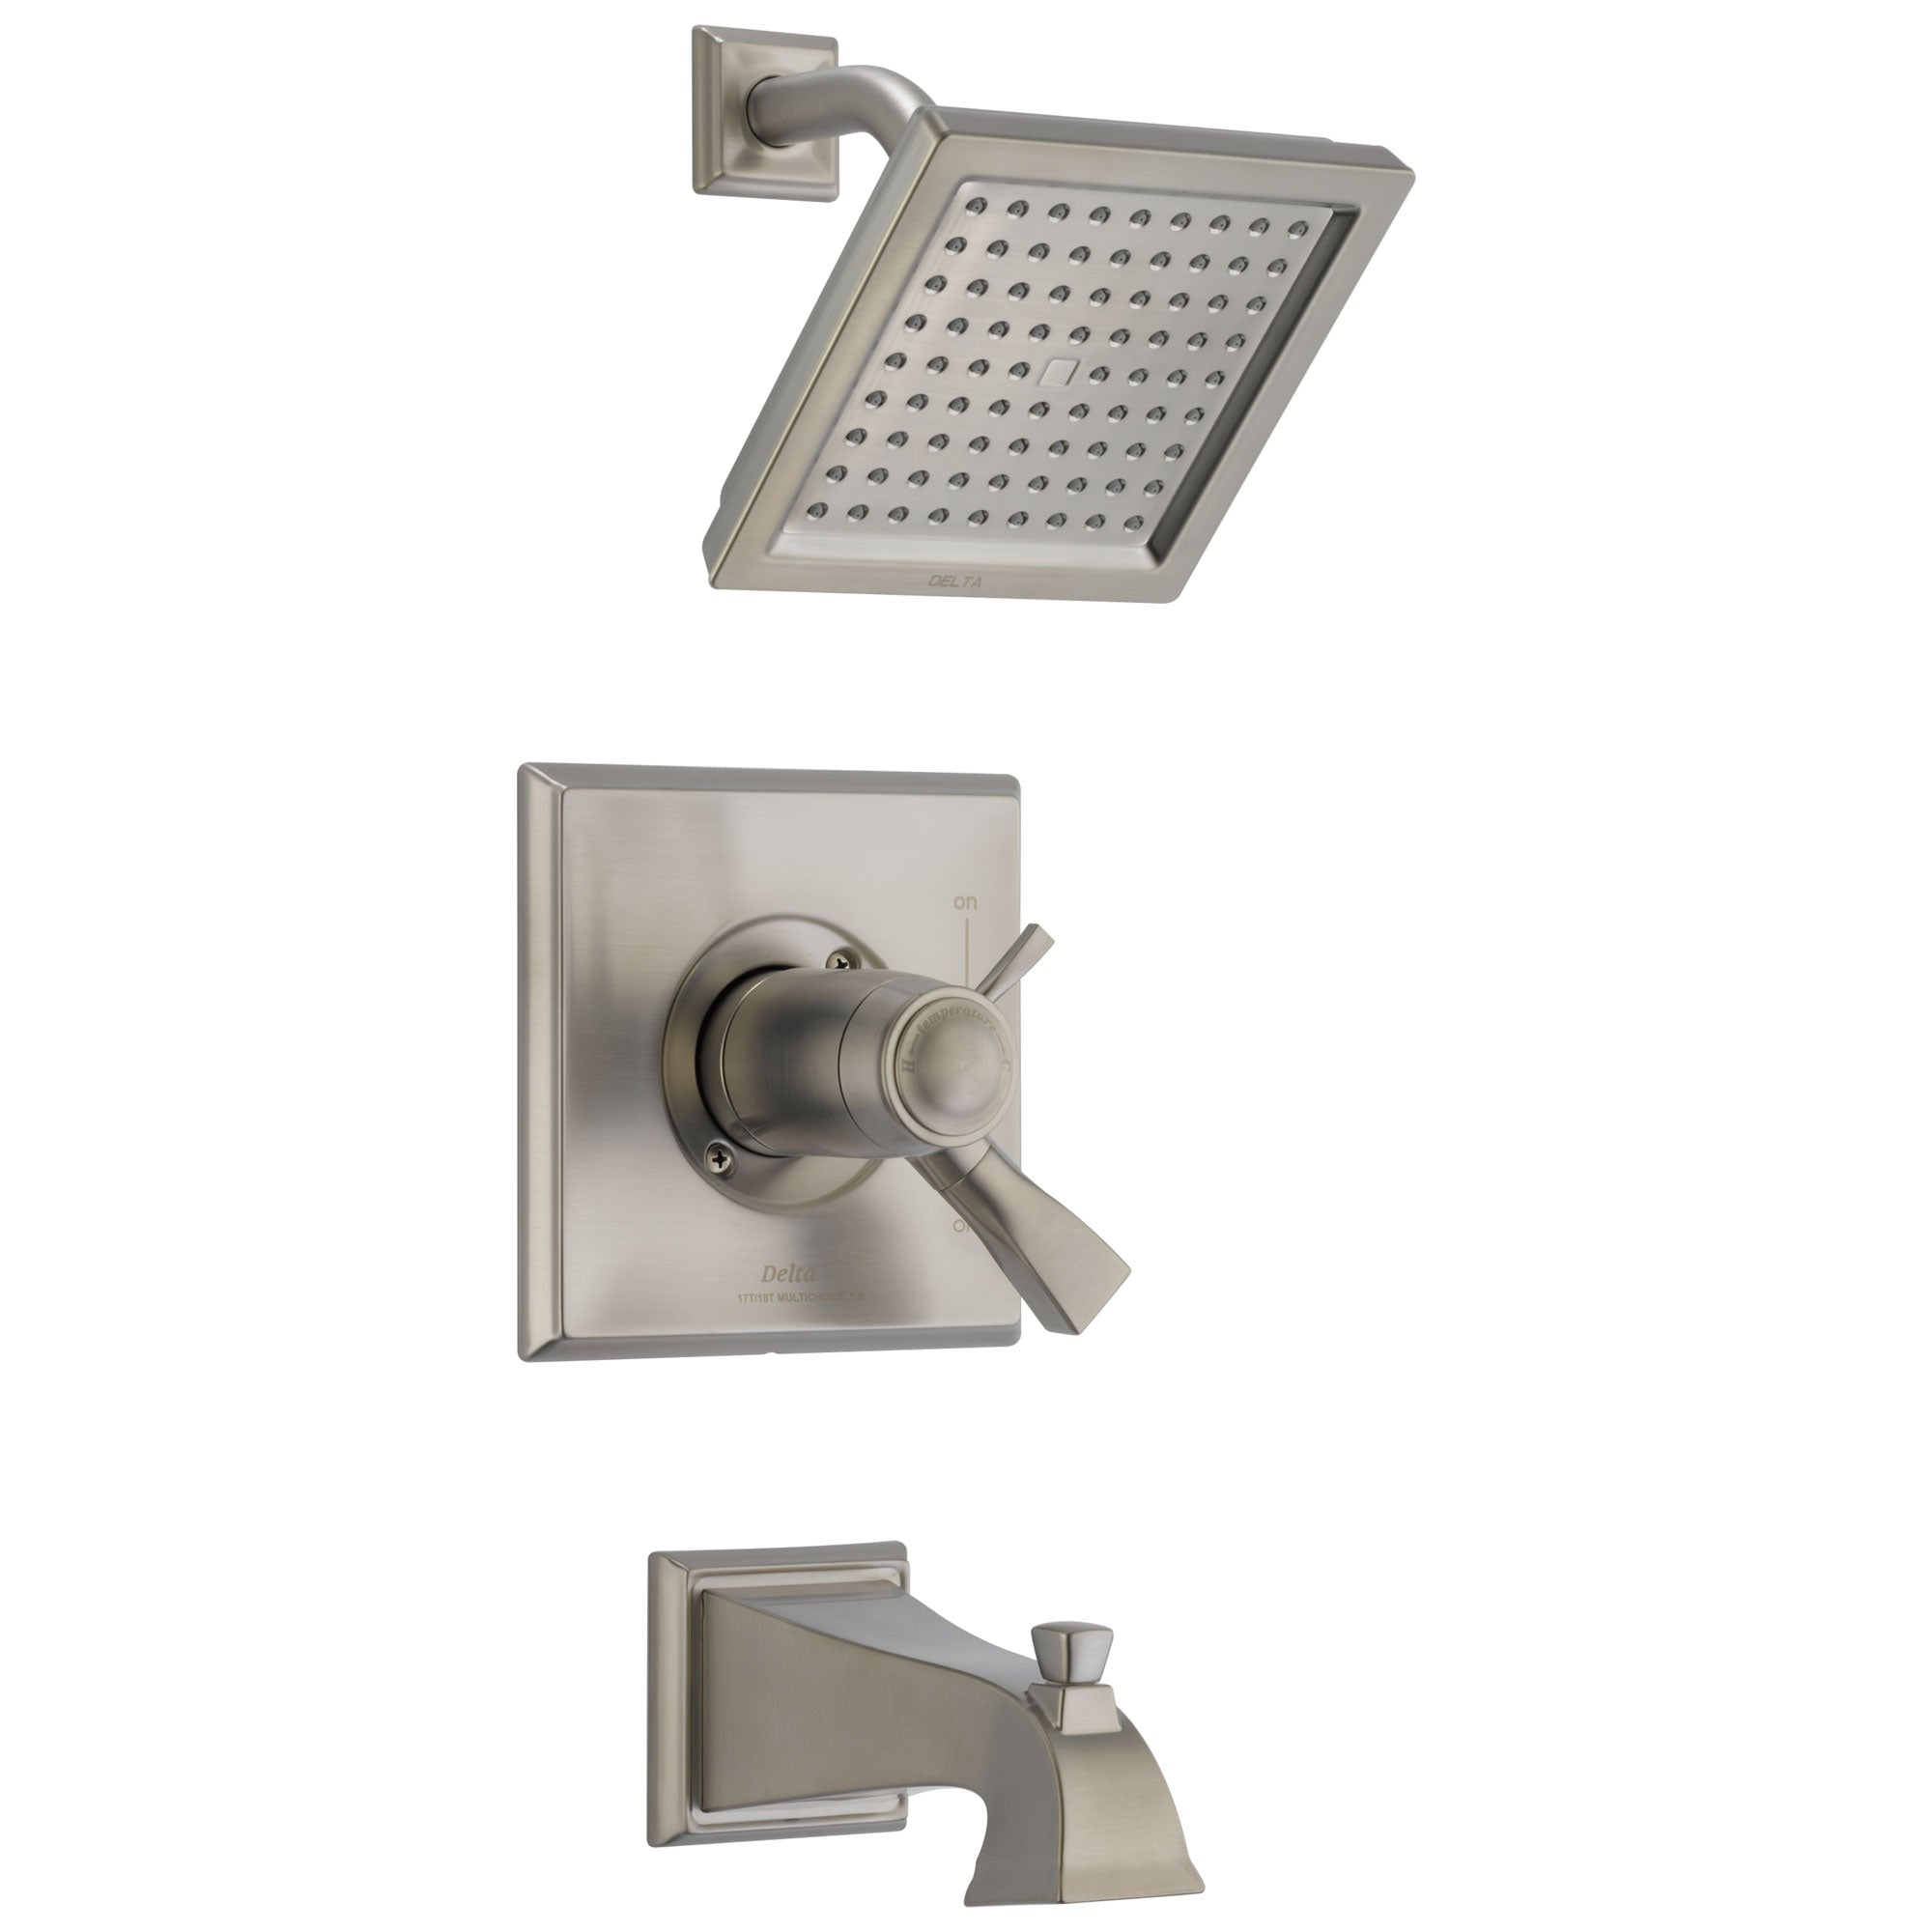 Delta Dryden Stainless Steel Finish TempAssure 17T Series Water Efficient Tub & Shower Faucet Combination Trim Kit (Requires Valve) DT17T451SSWE